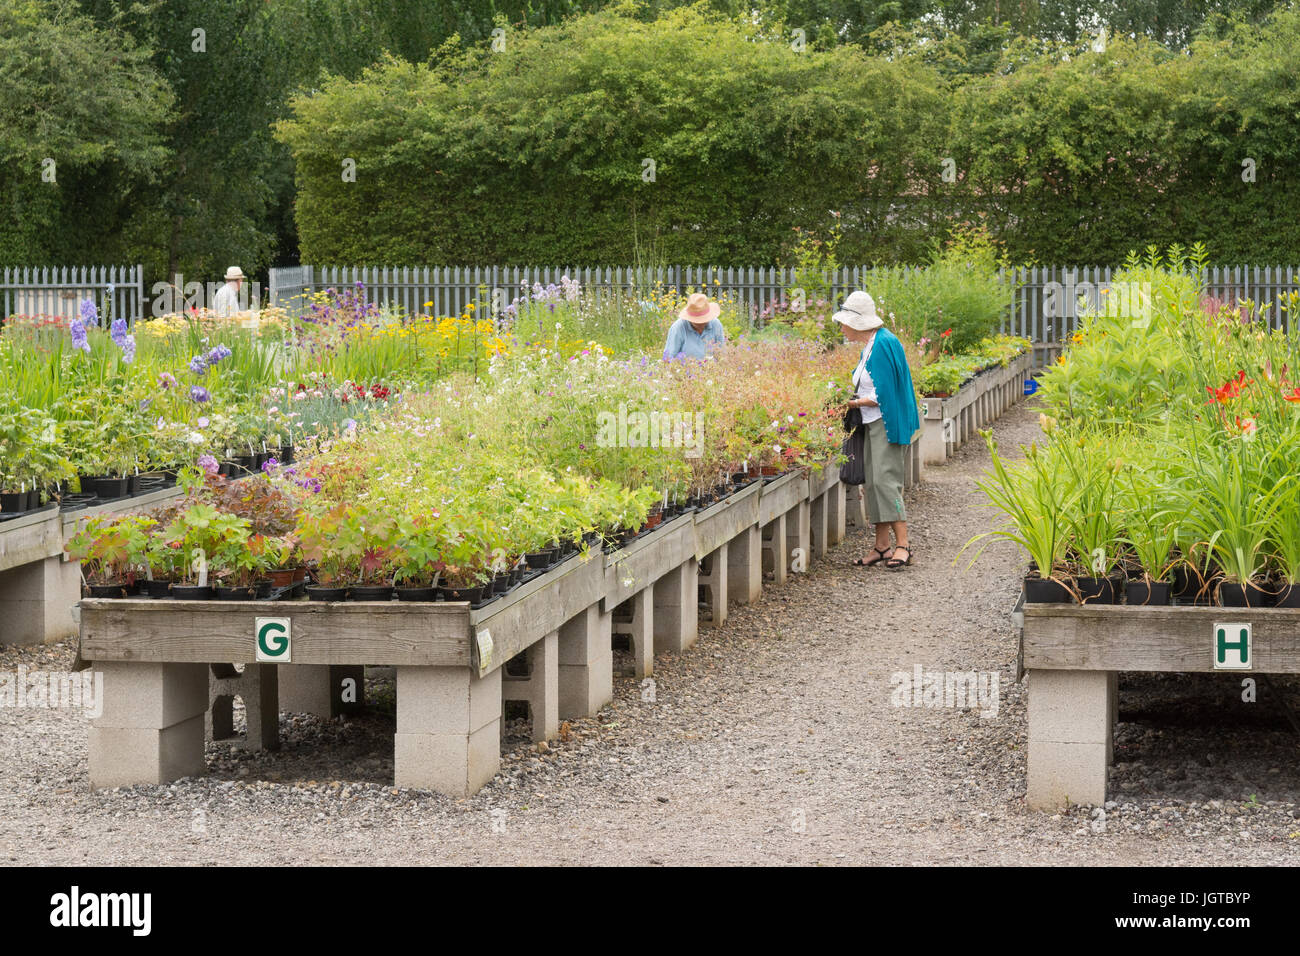 specialised perennial nursery - Breezy Knees Gardens, York, Yorkshire, England, UK - Stock Image